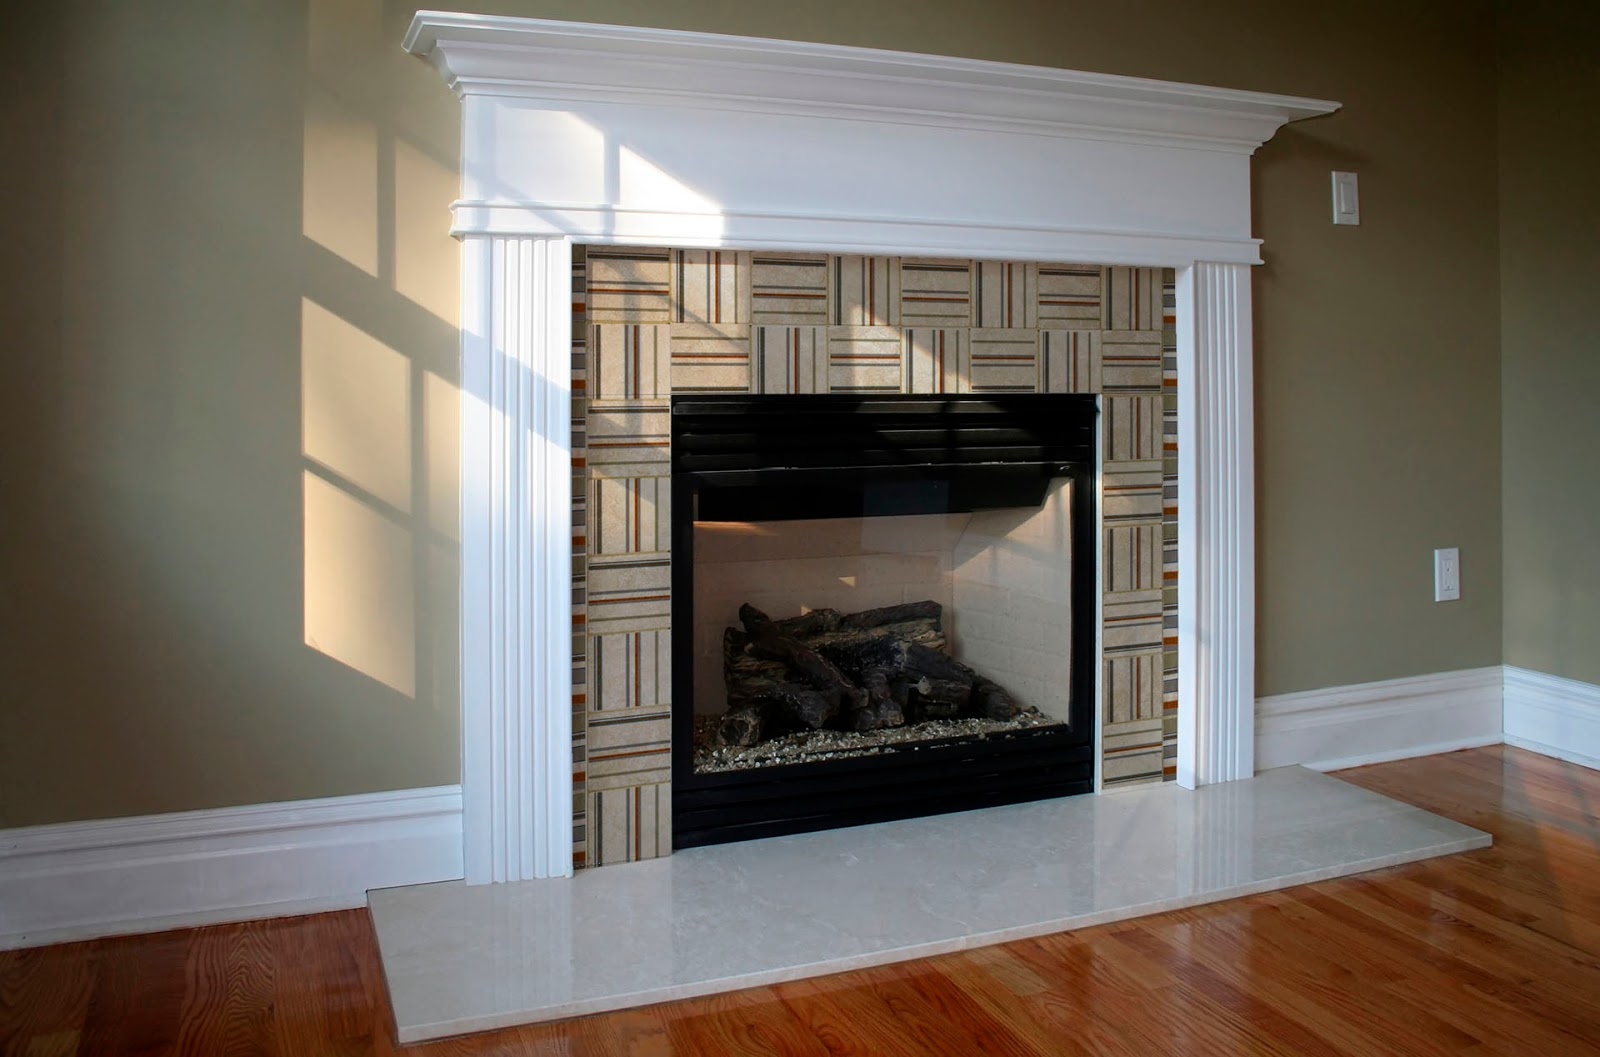 Stoneimpressions blog january 2011 - Stone fireplace surround ideas ...